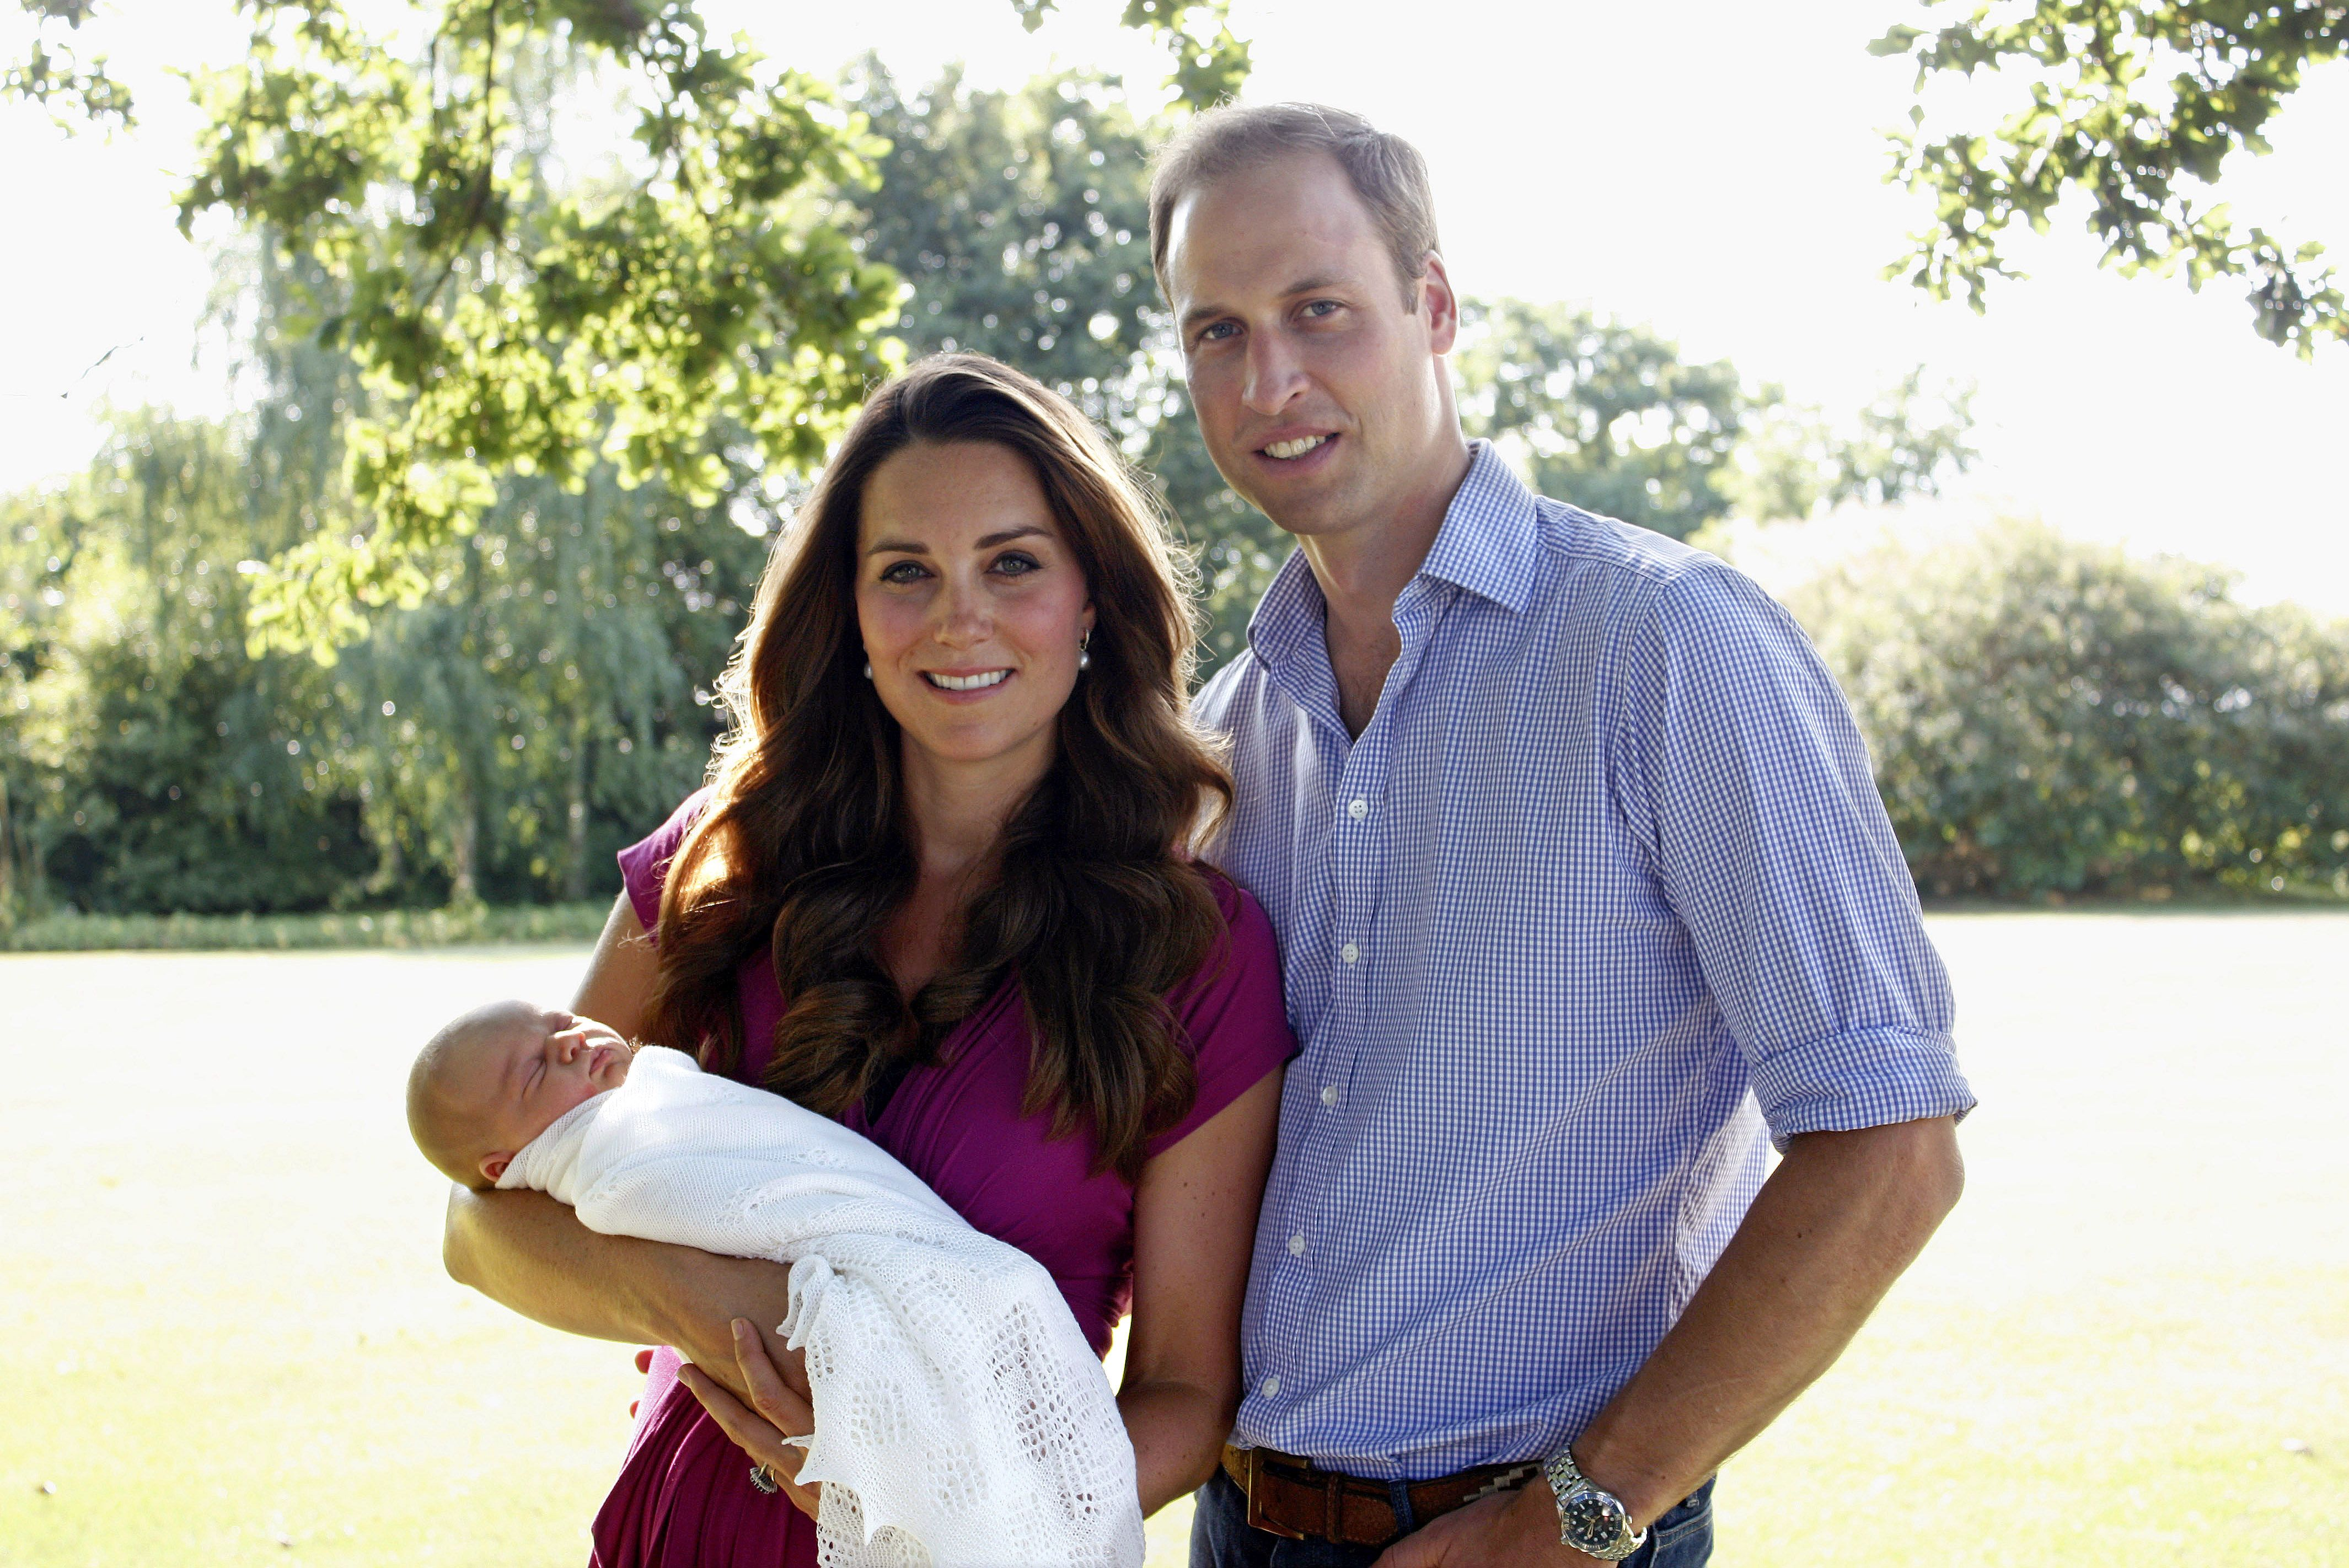 First official photo of Prince George after his birth | Photo: Getty Images